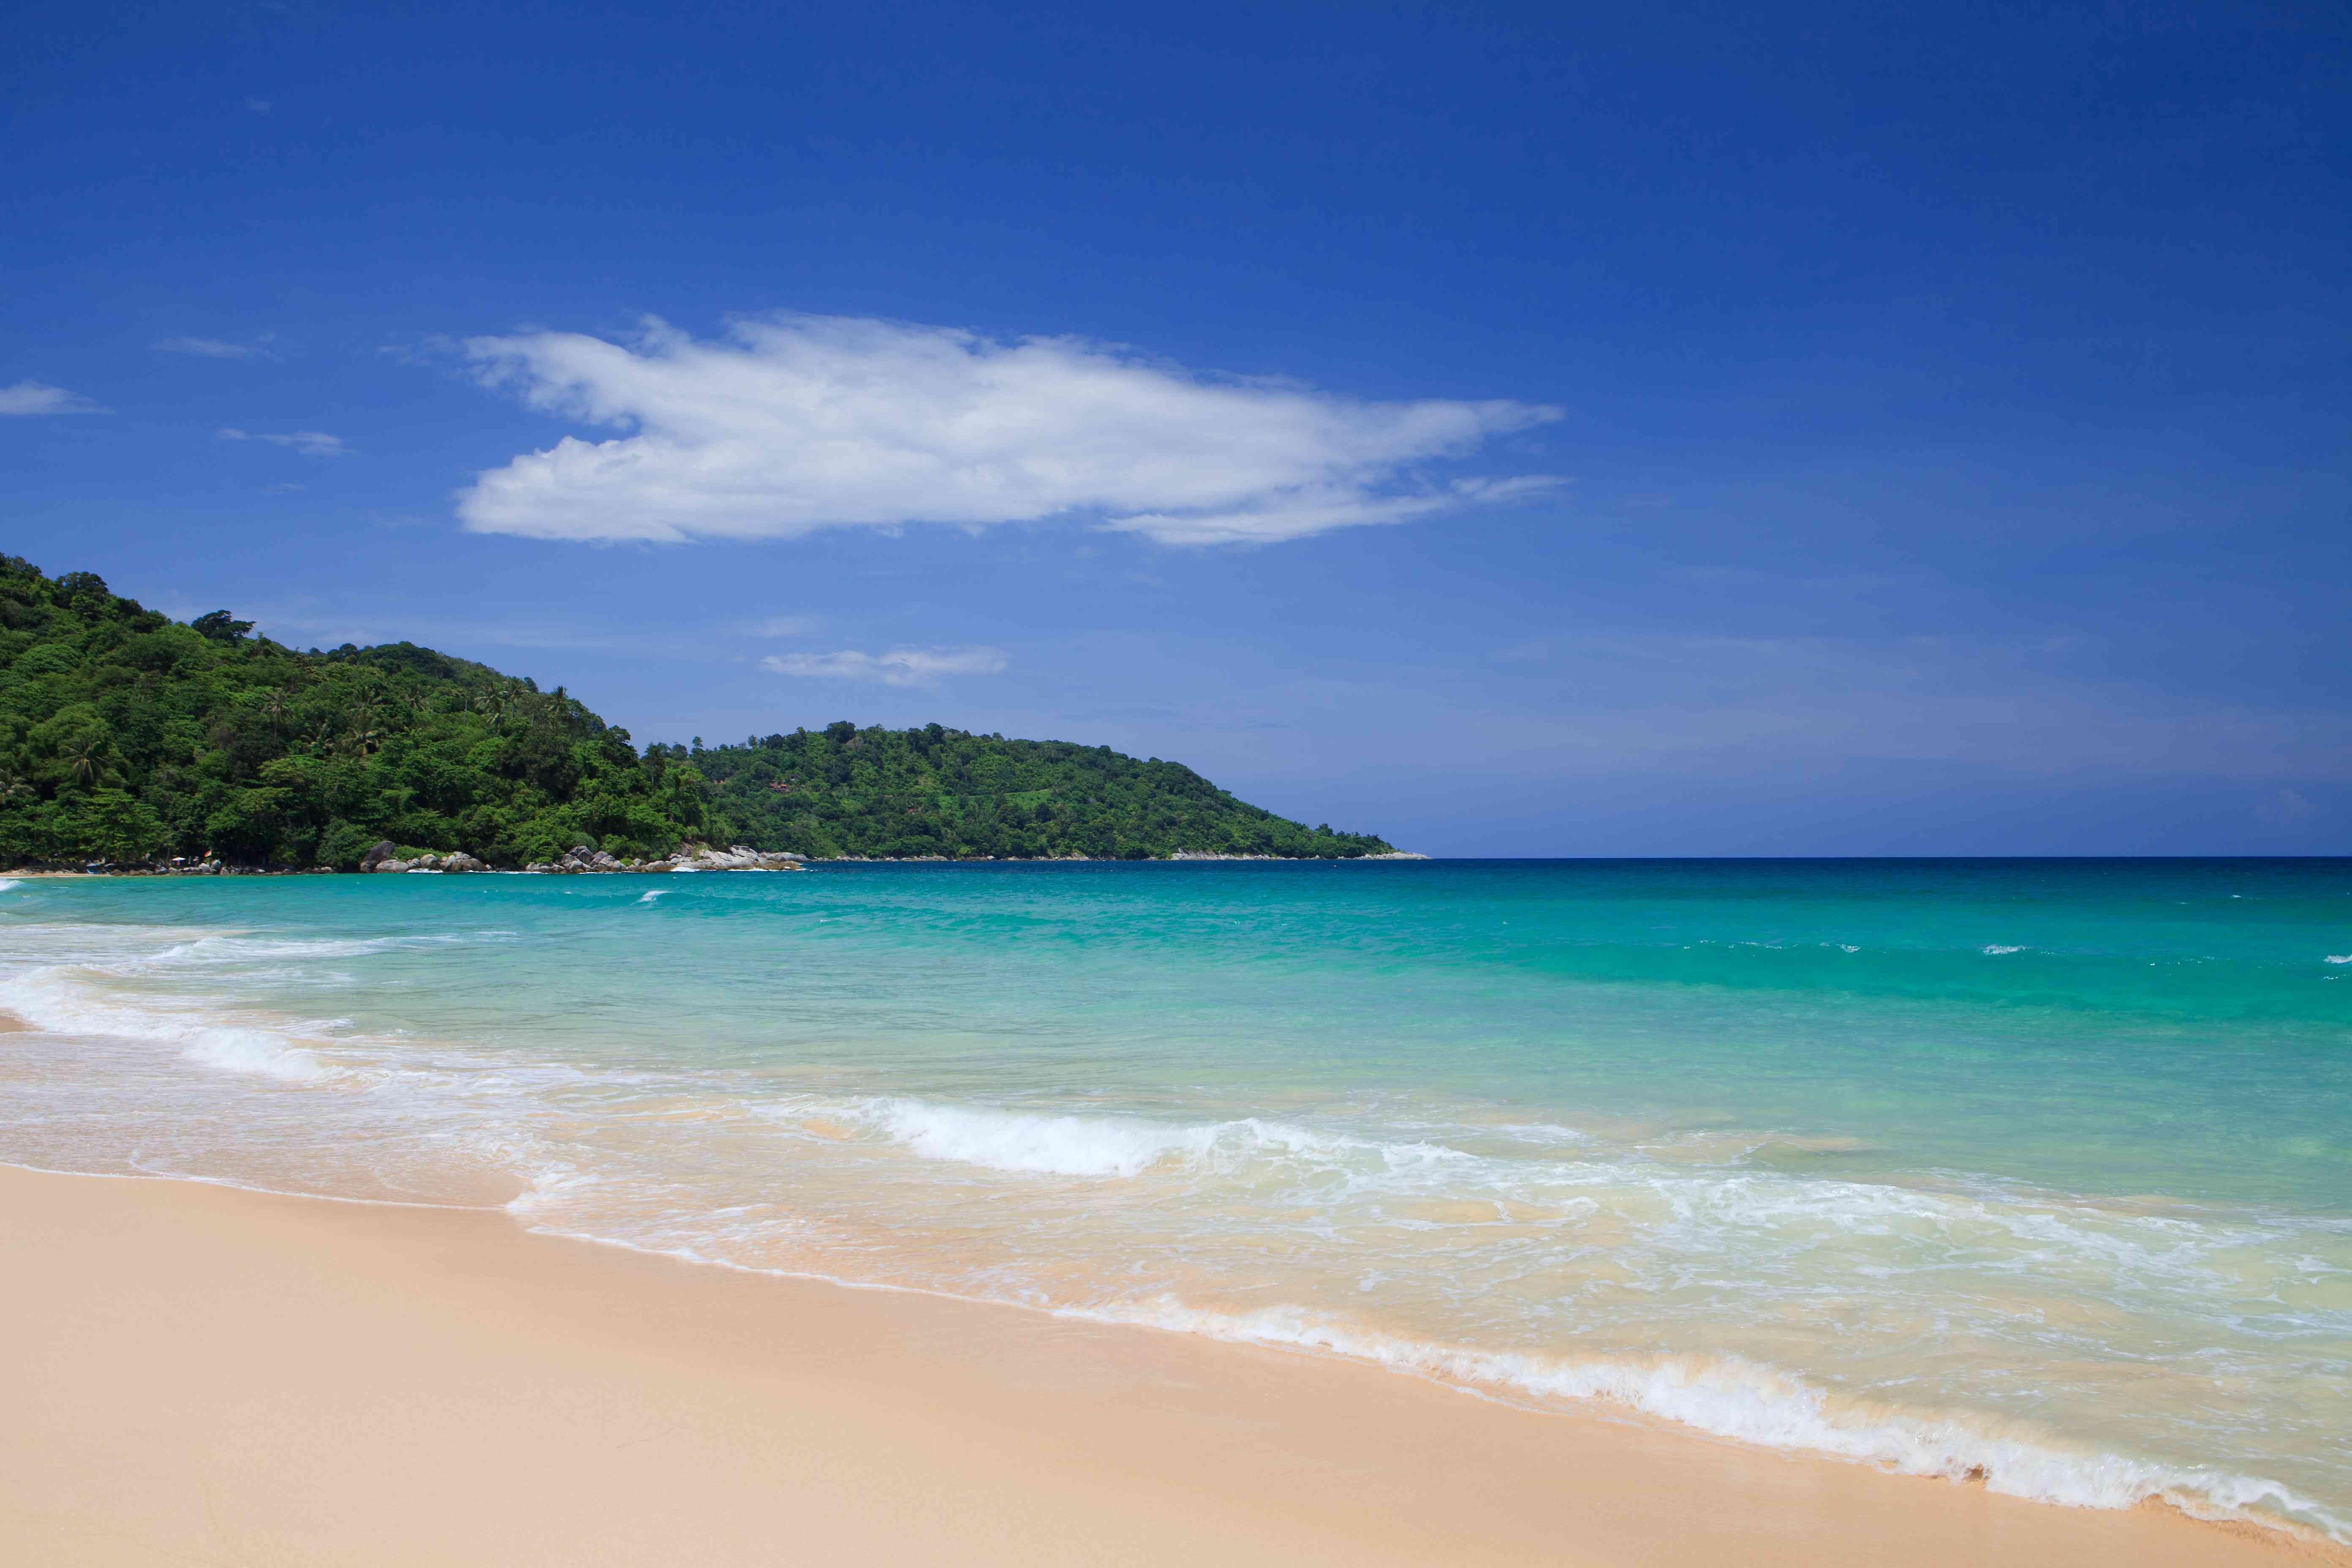 Tranquil beach with warm turquoise water